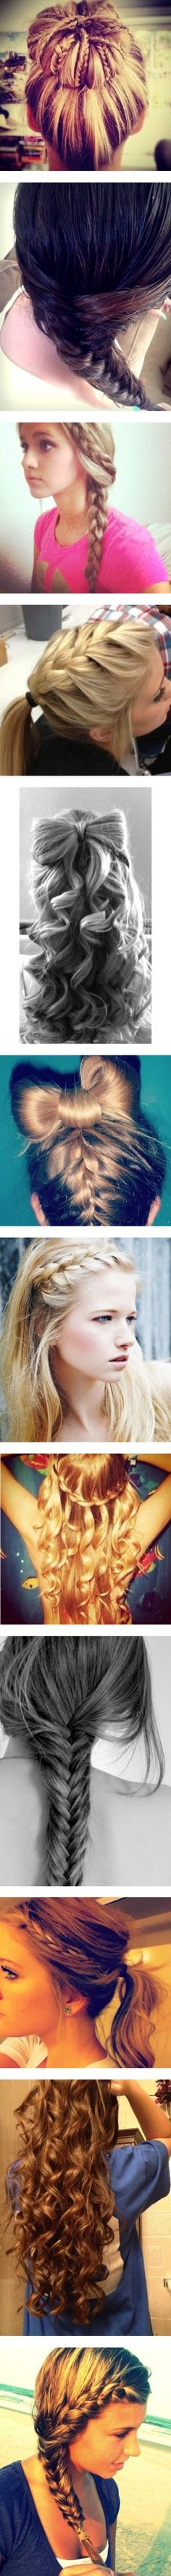 french braids, inspiration, long hair, curls, bows